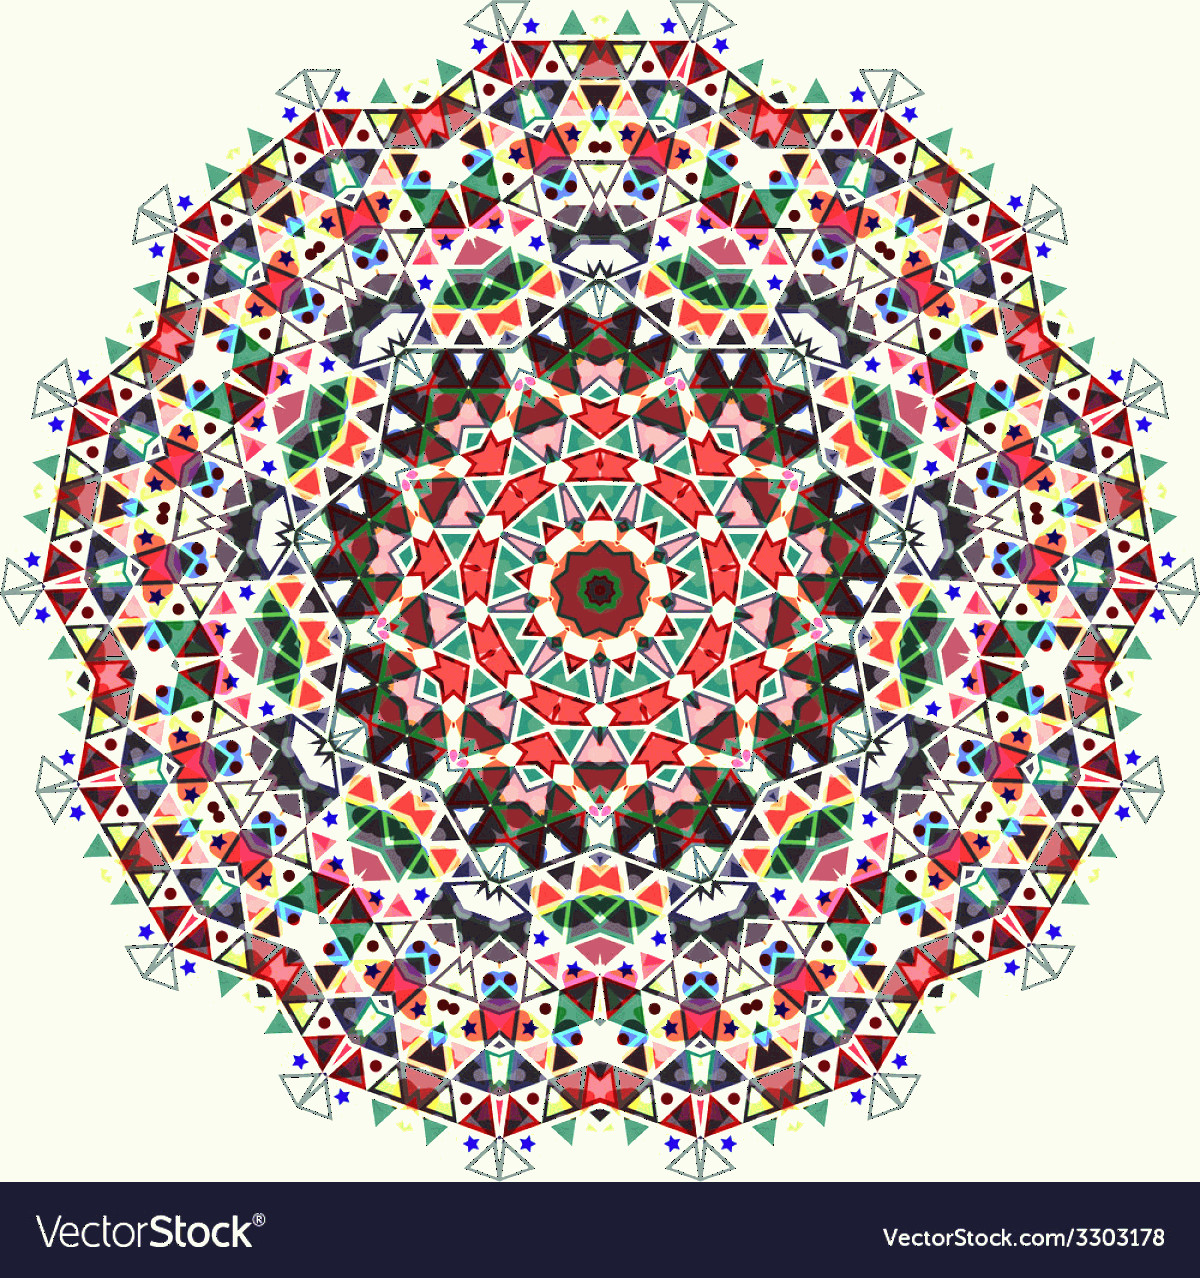 Lace Vector Images Free Clip Art: Triangular Ornamental Round Lace Vector